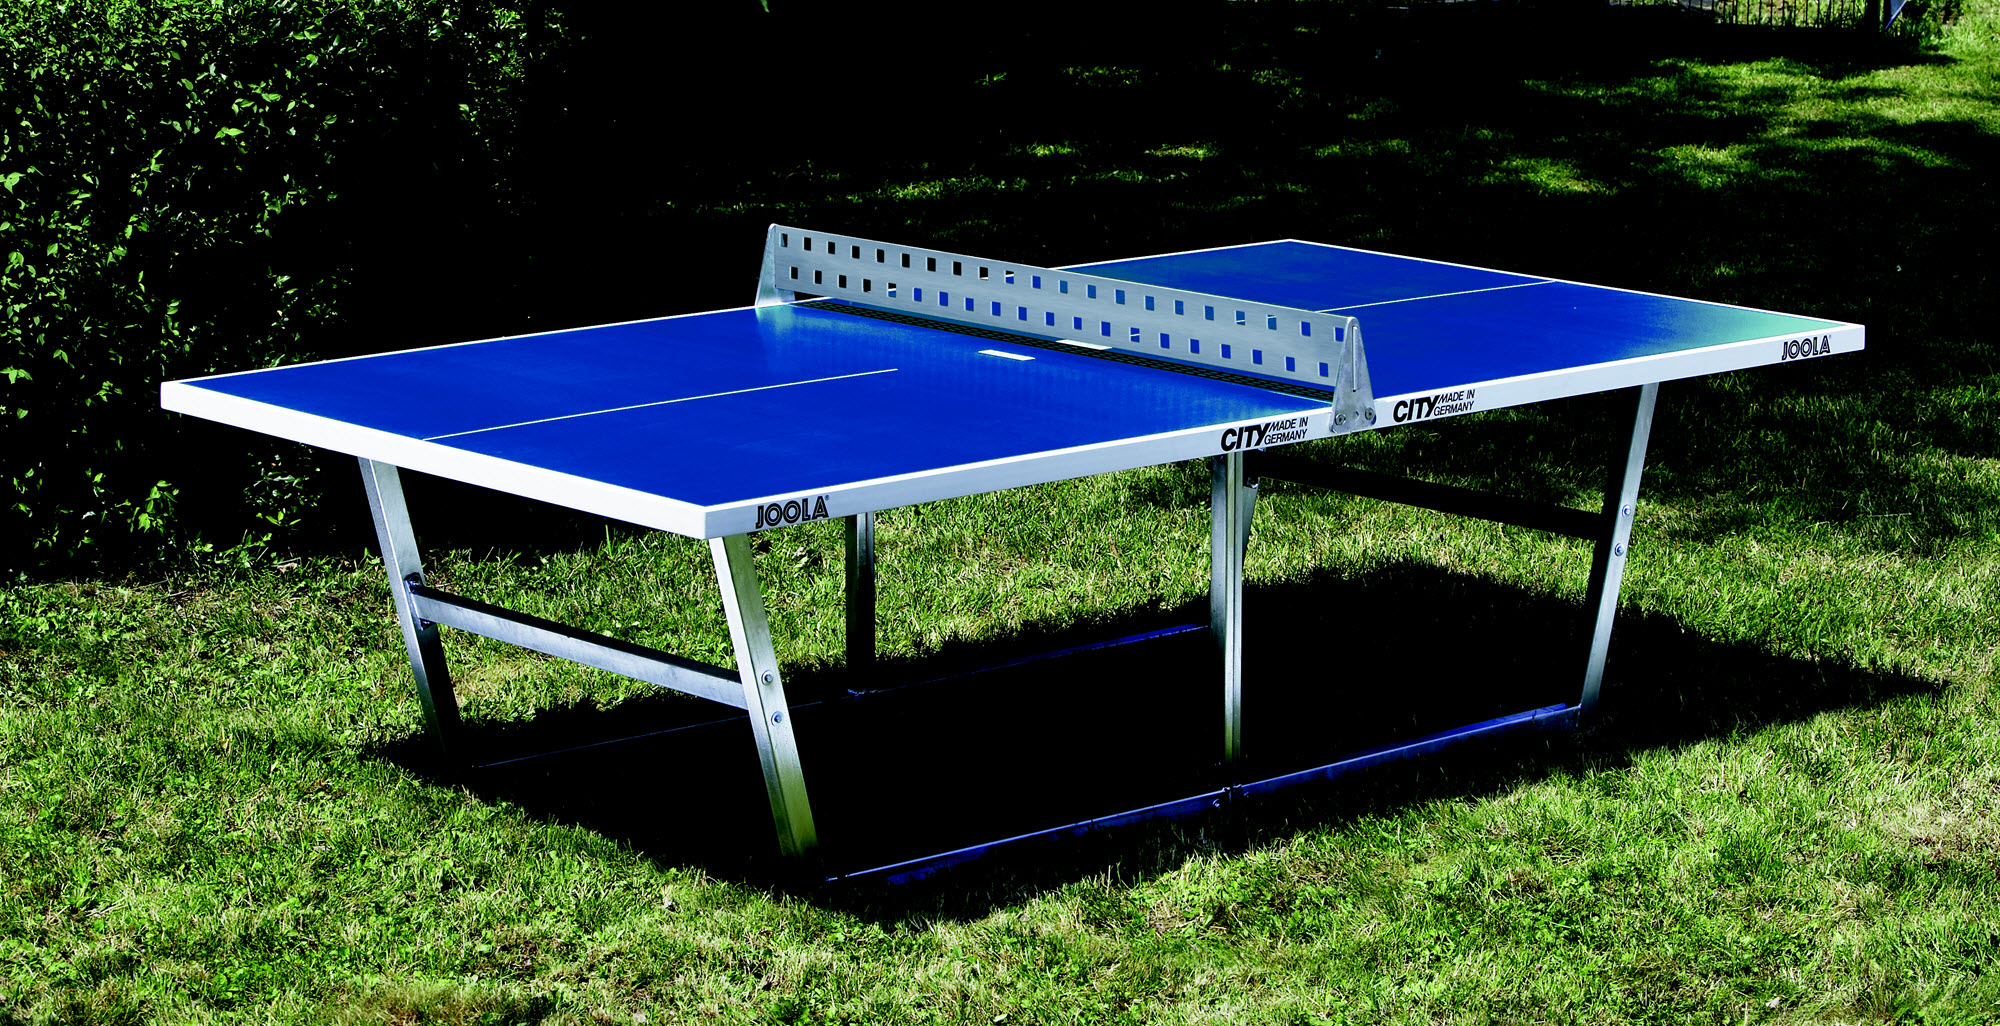 Joola City Outdoor Ping Pong Table Gametablesonline Com